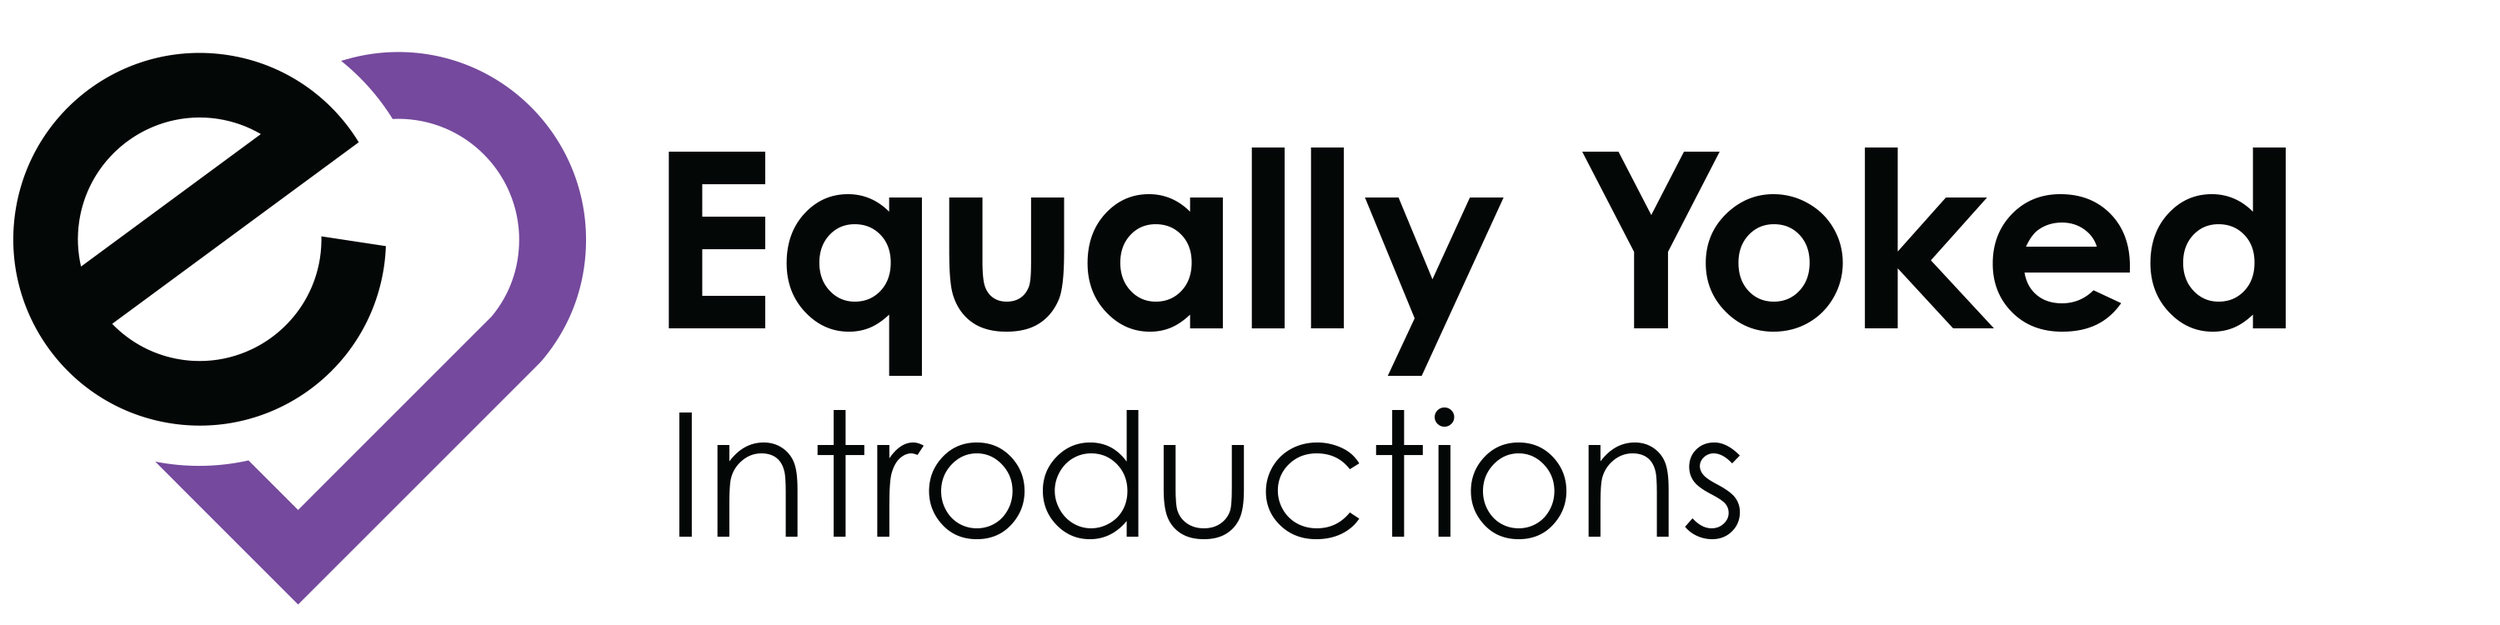 Equally Yoked Introductions Logo Development